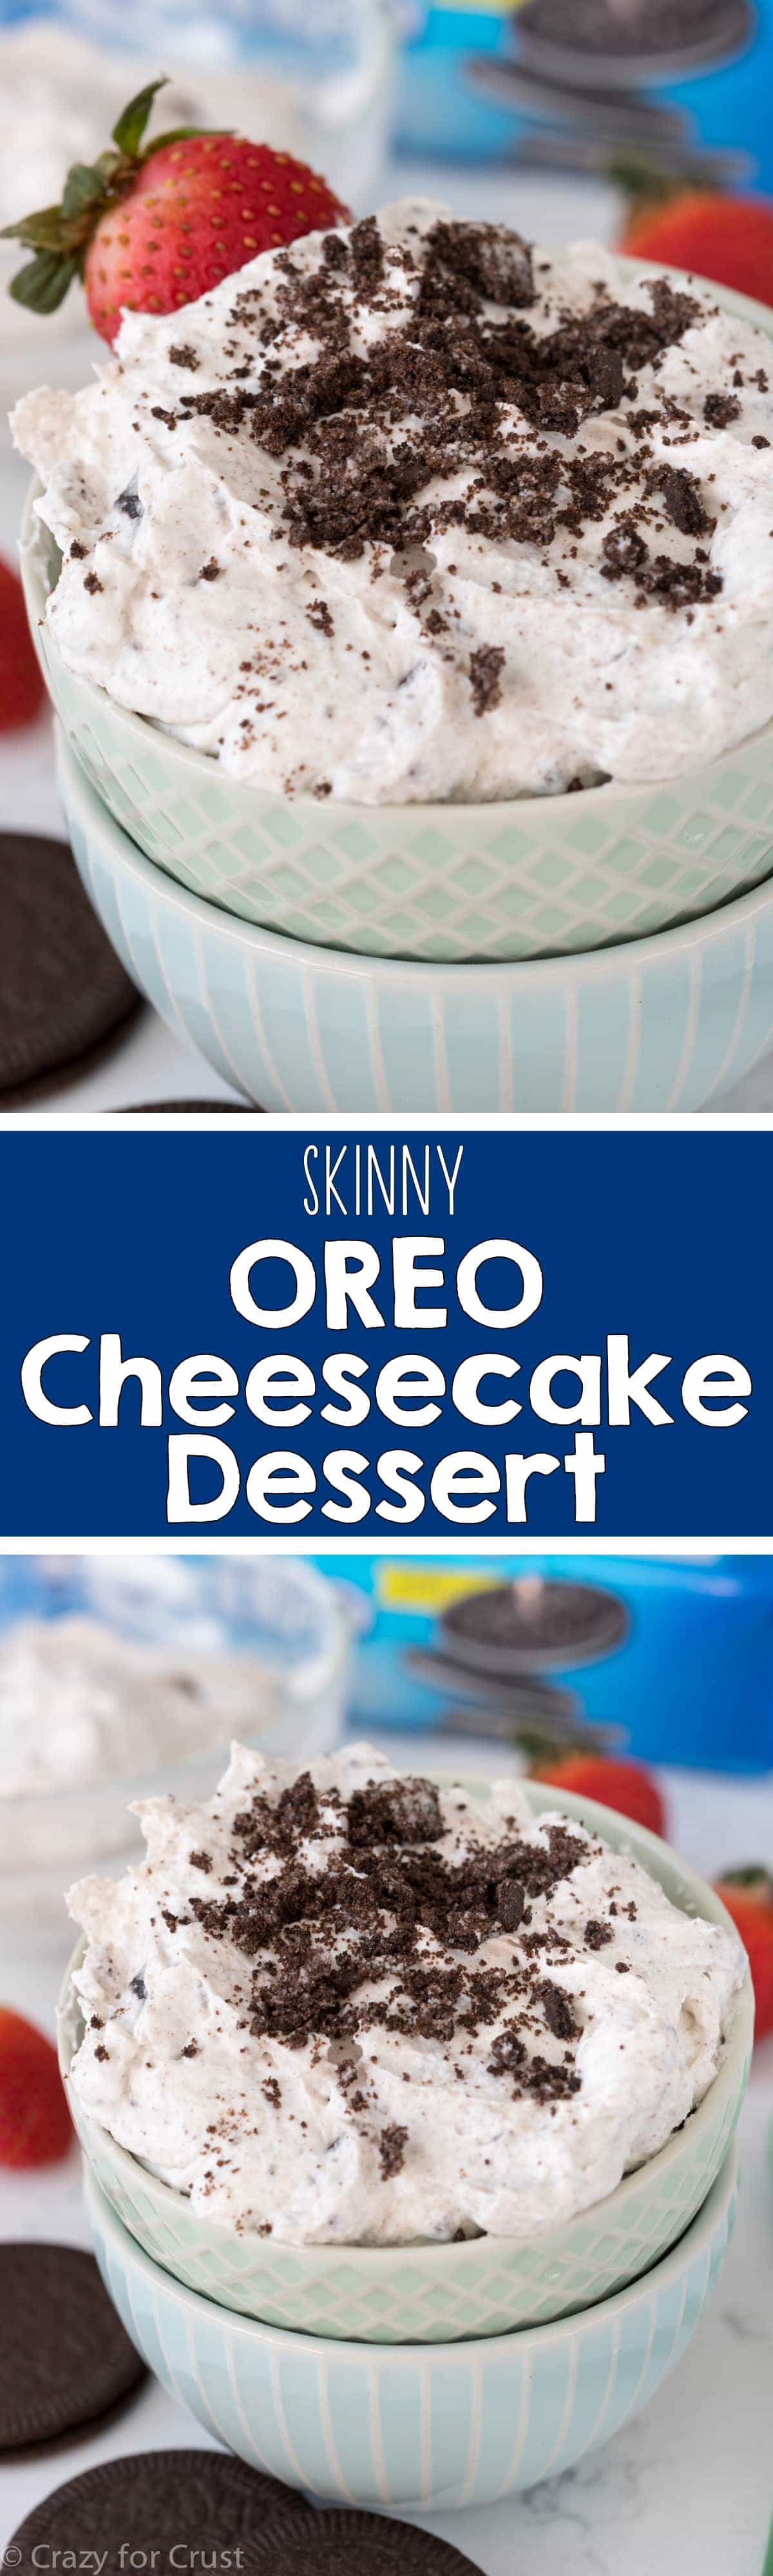 Skinny Oreo Cheesecake Dessert - this easy no-bake Oreo Cheesecake can be used as a dip or eaten with a spoon. And it has less fat and calories and more protein!